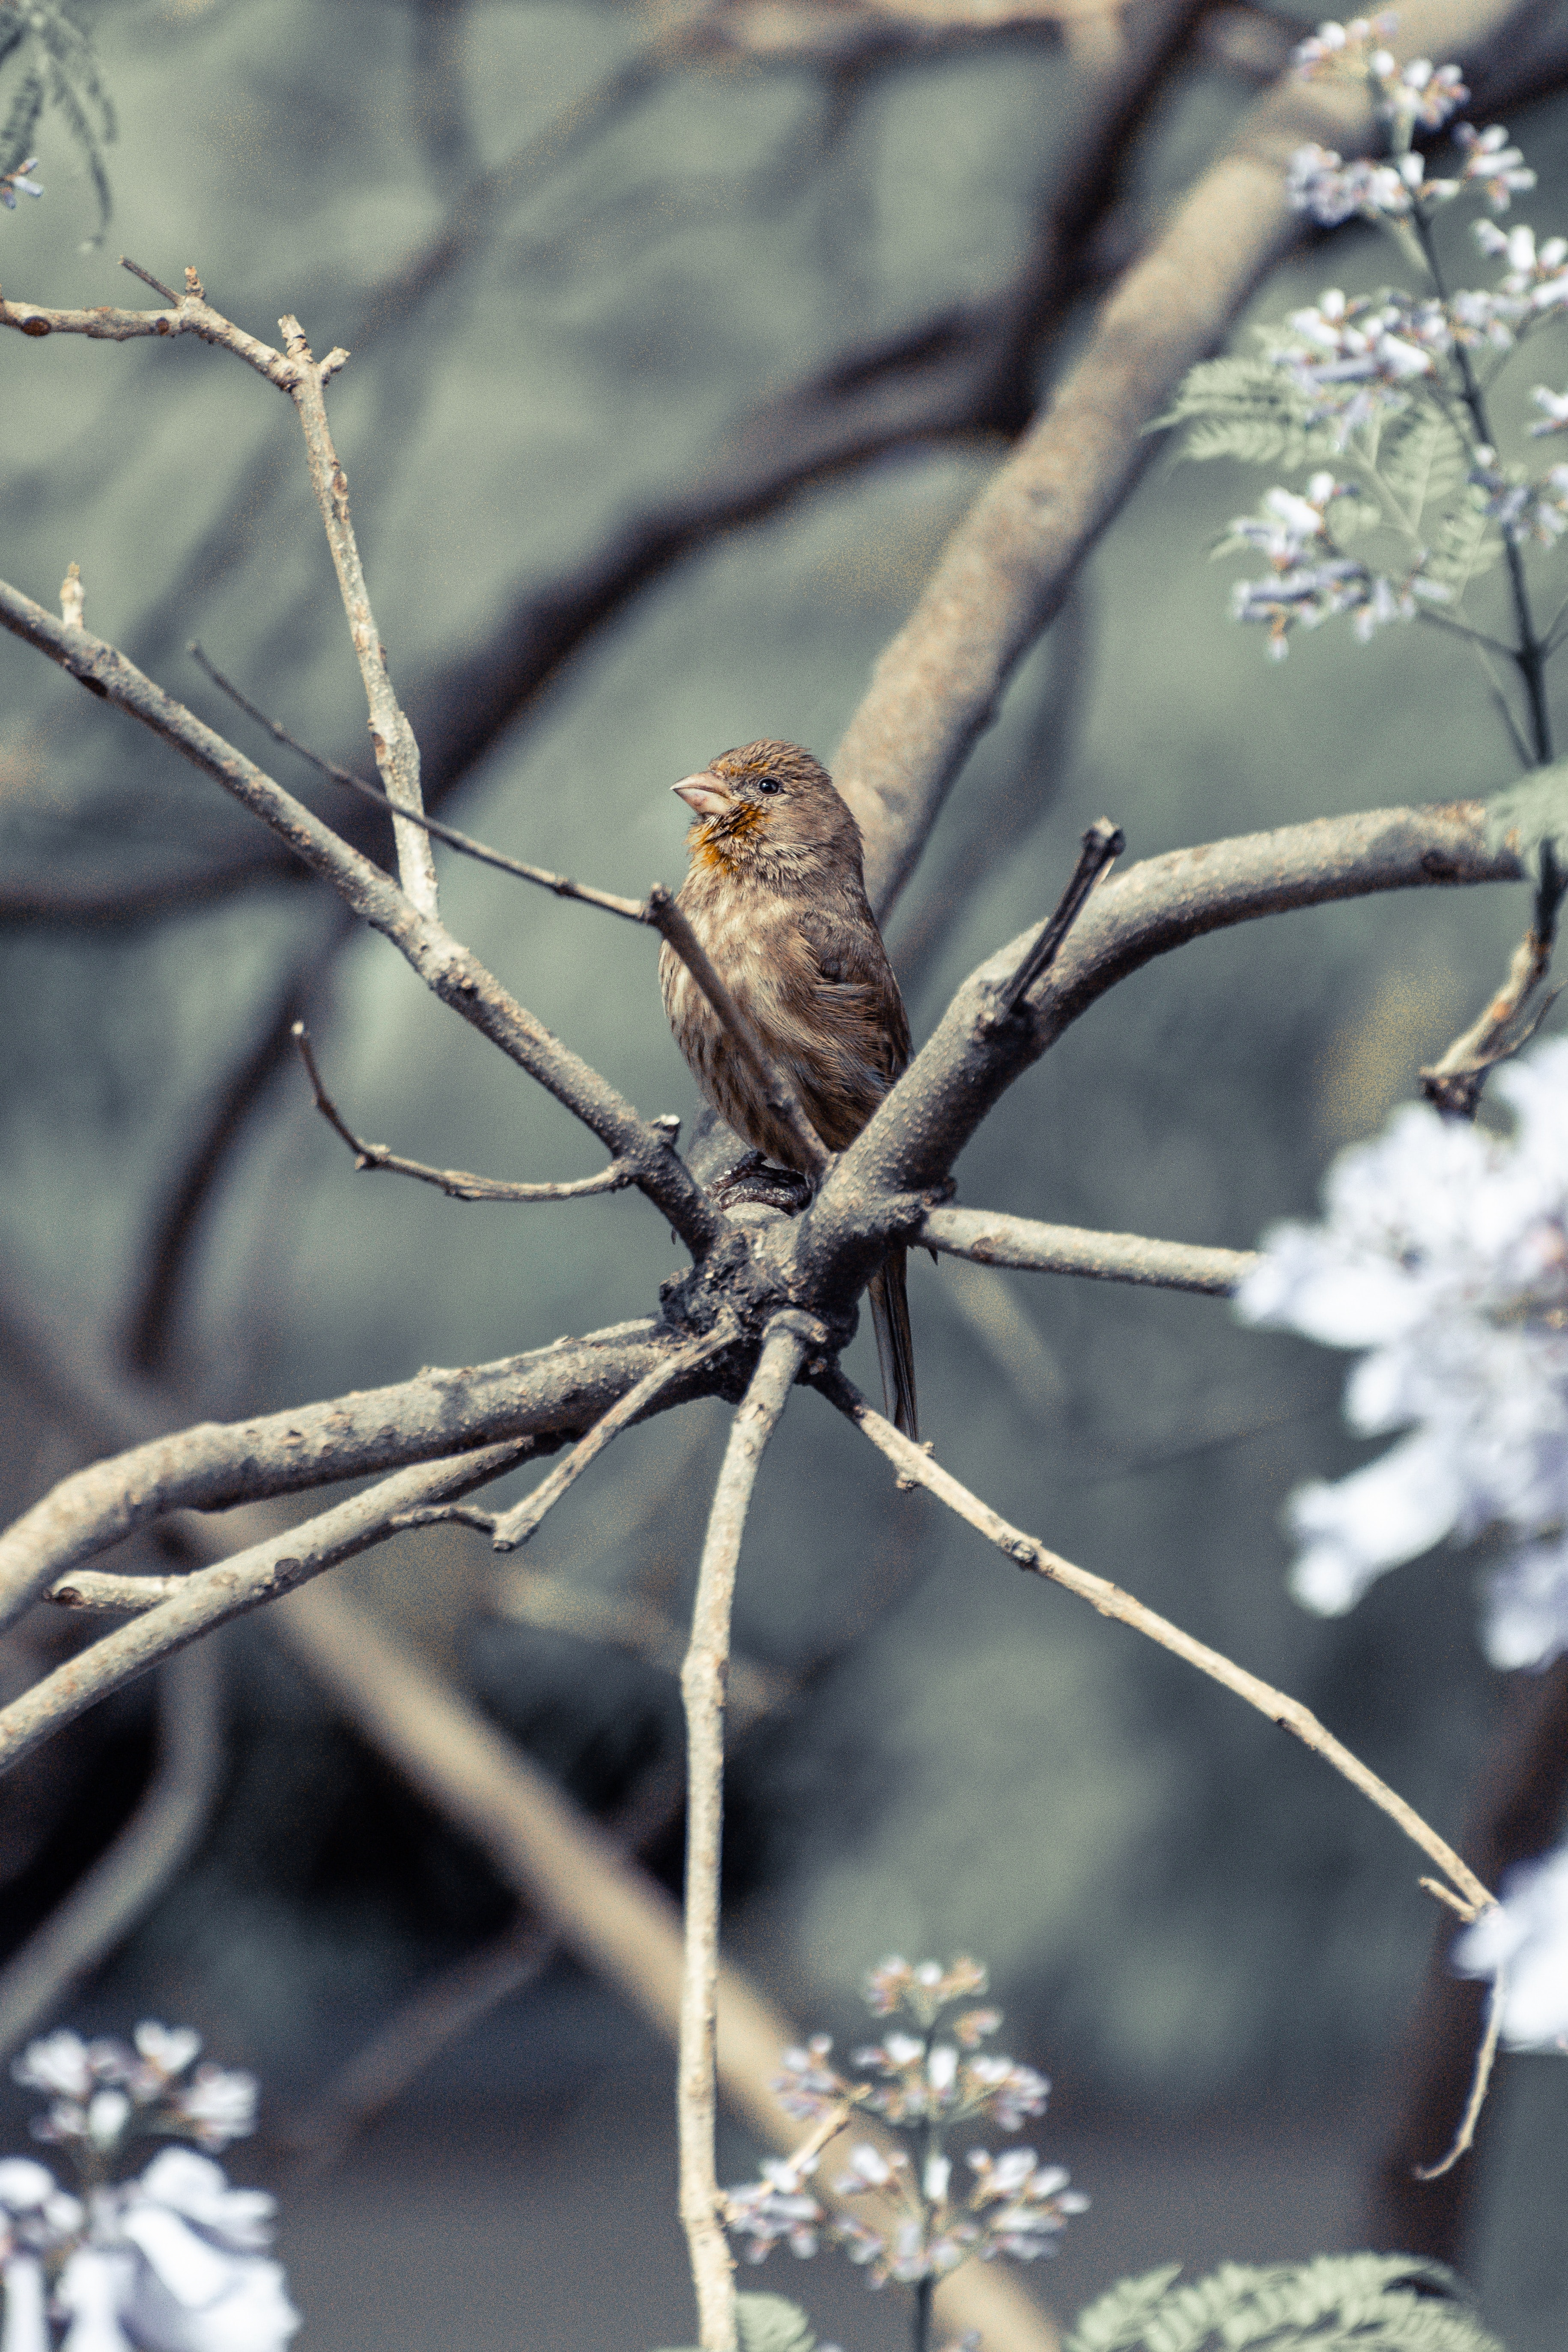 brown bird perch on tree branch